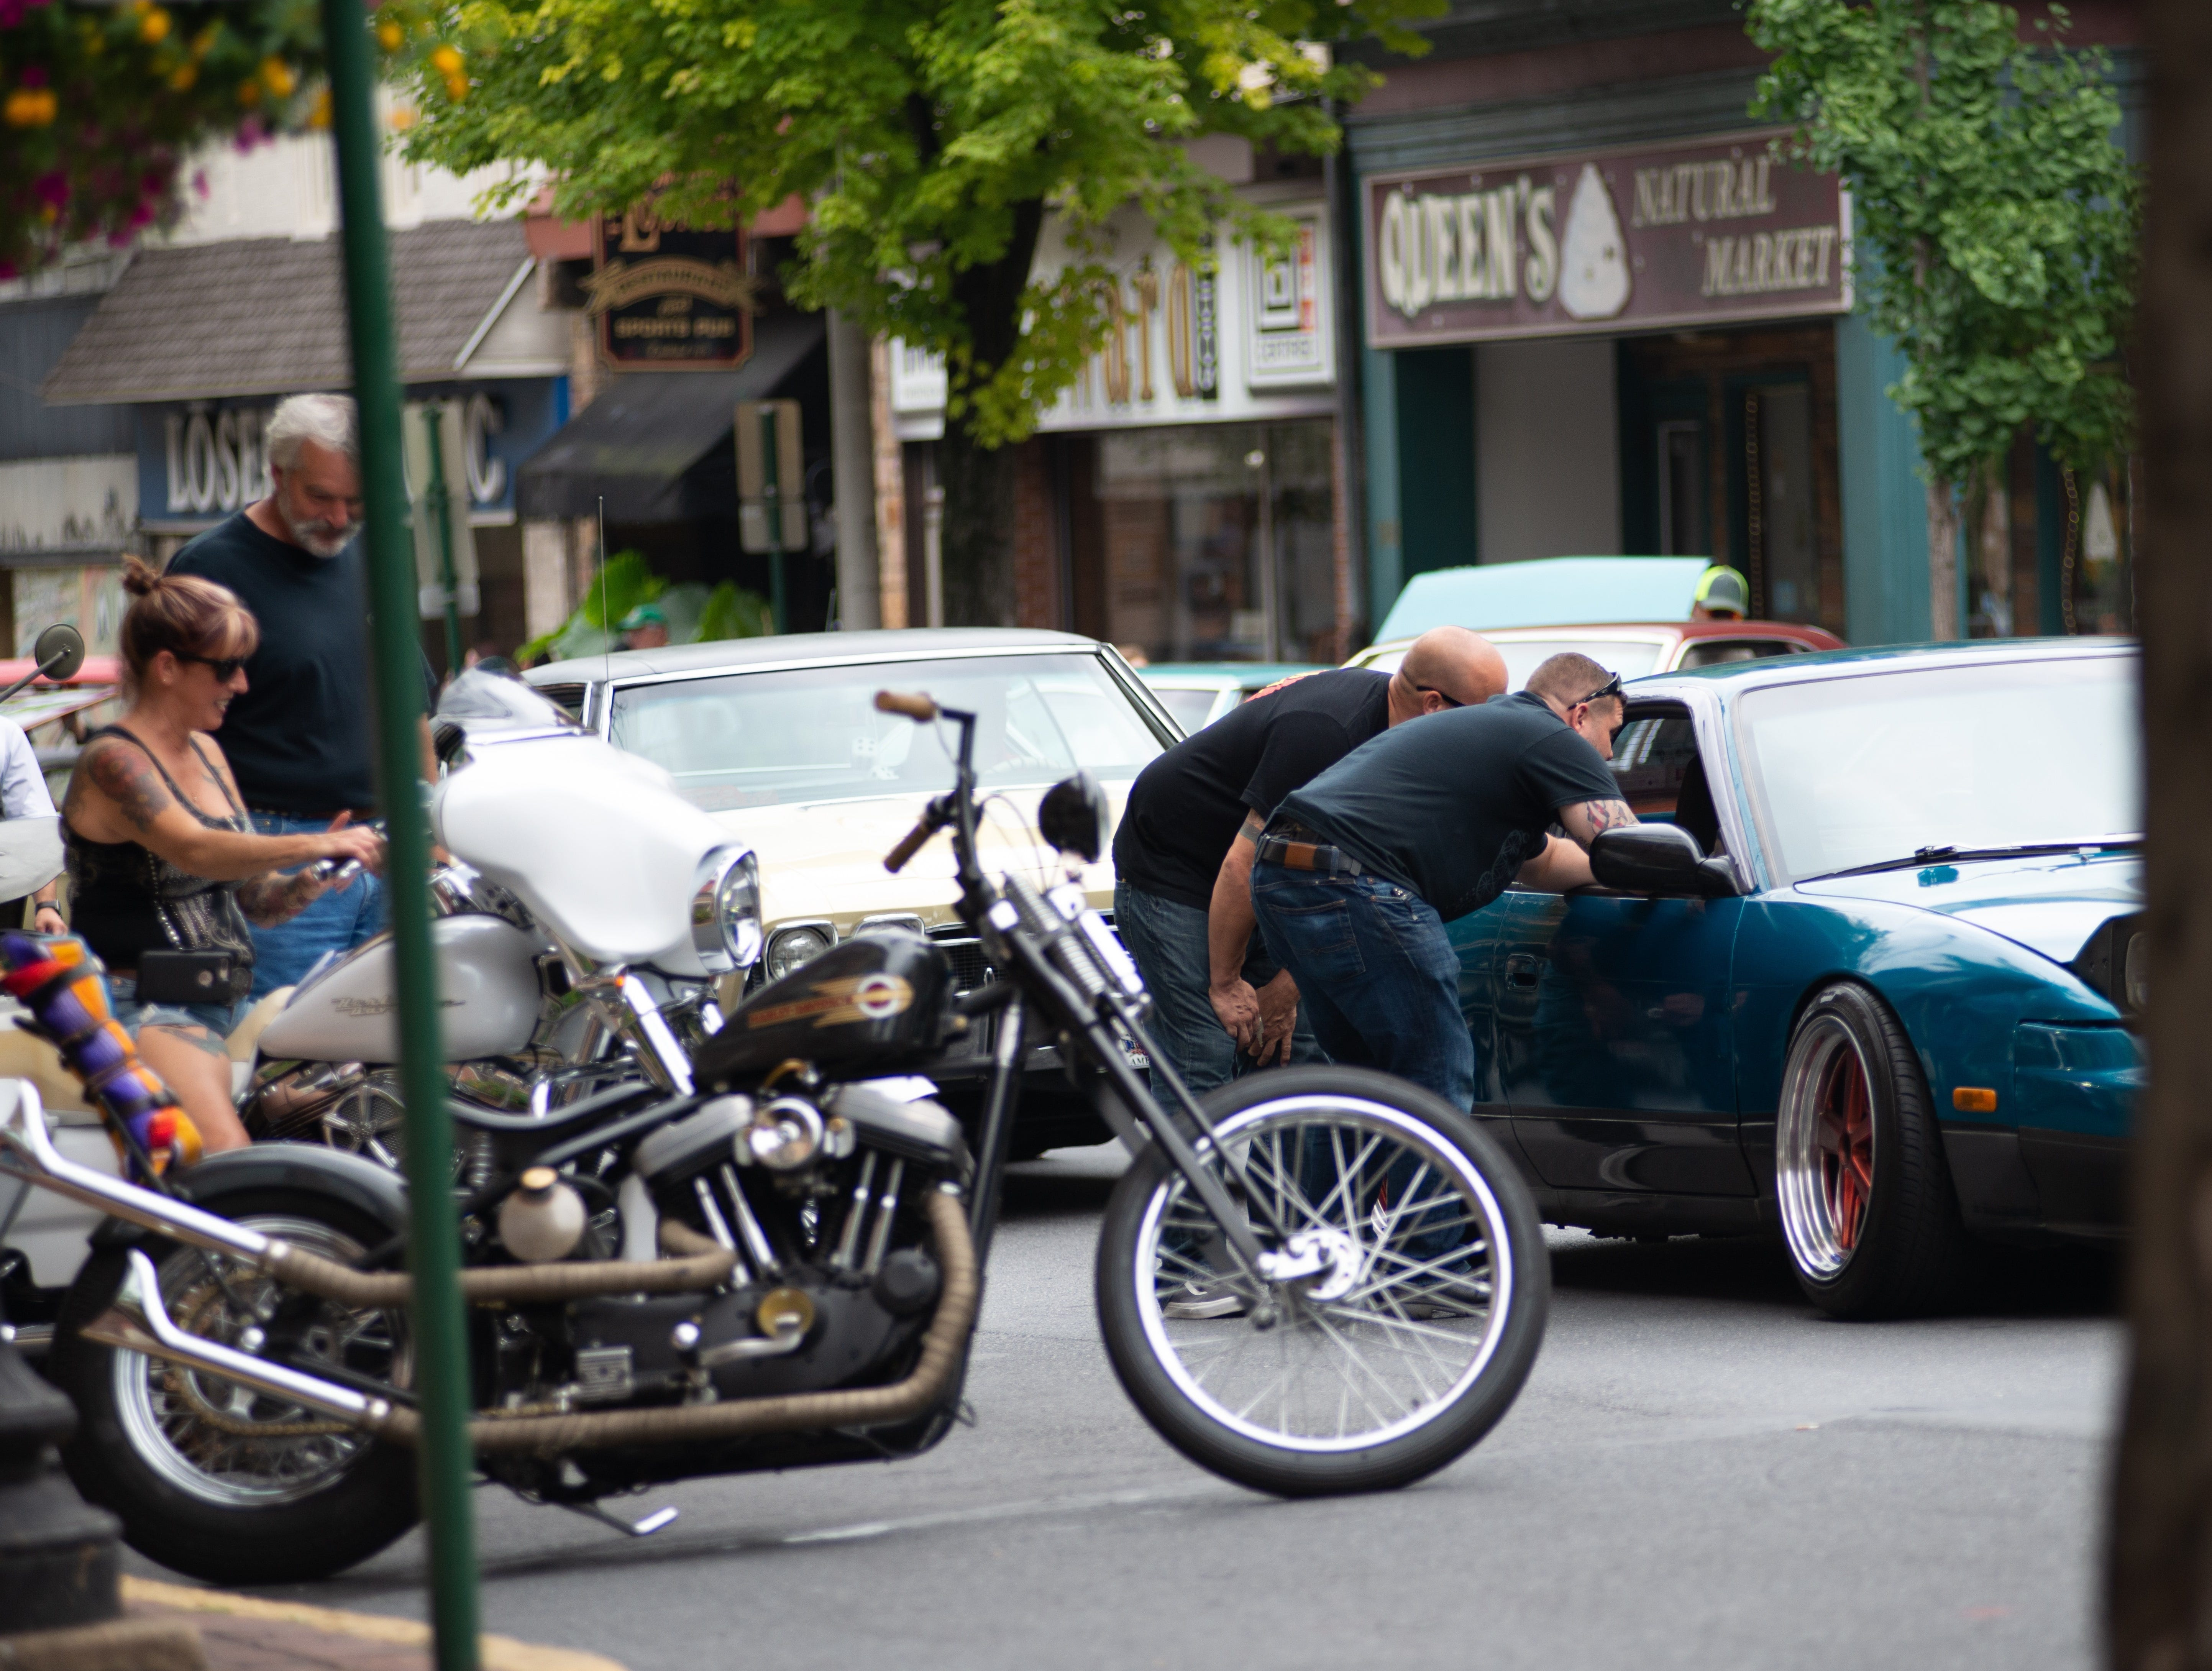 Cumberland Street in downtown Lebanon was shut down Sunday, Aug. 26, 2018 for the Community of Lebanon Association Car & Motorcycle Show. Numerous cars, old and new, were on display.